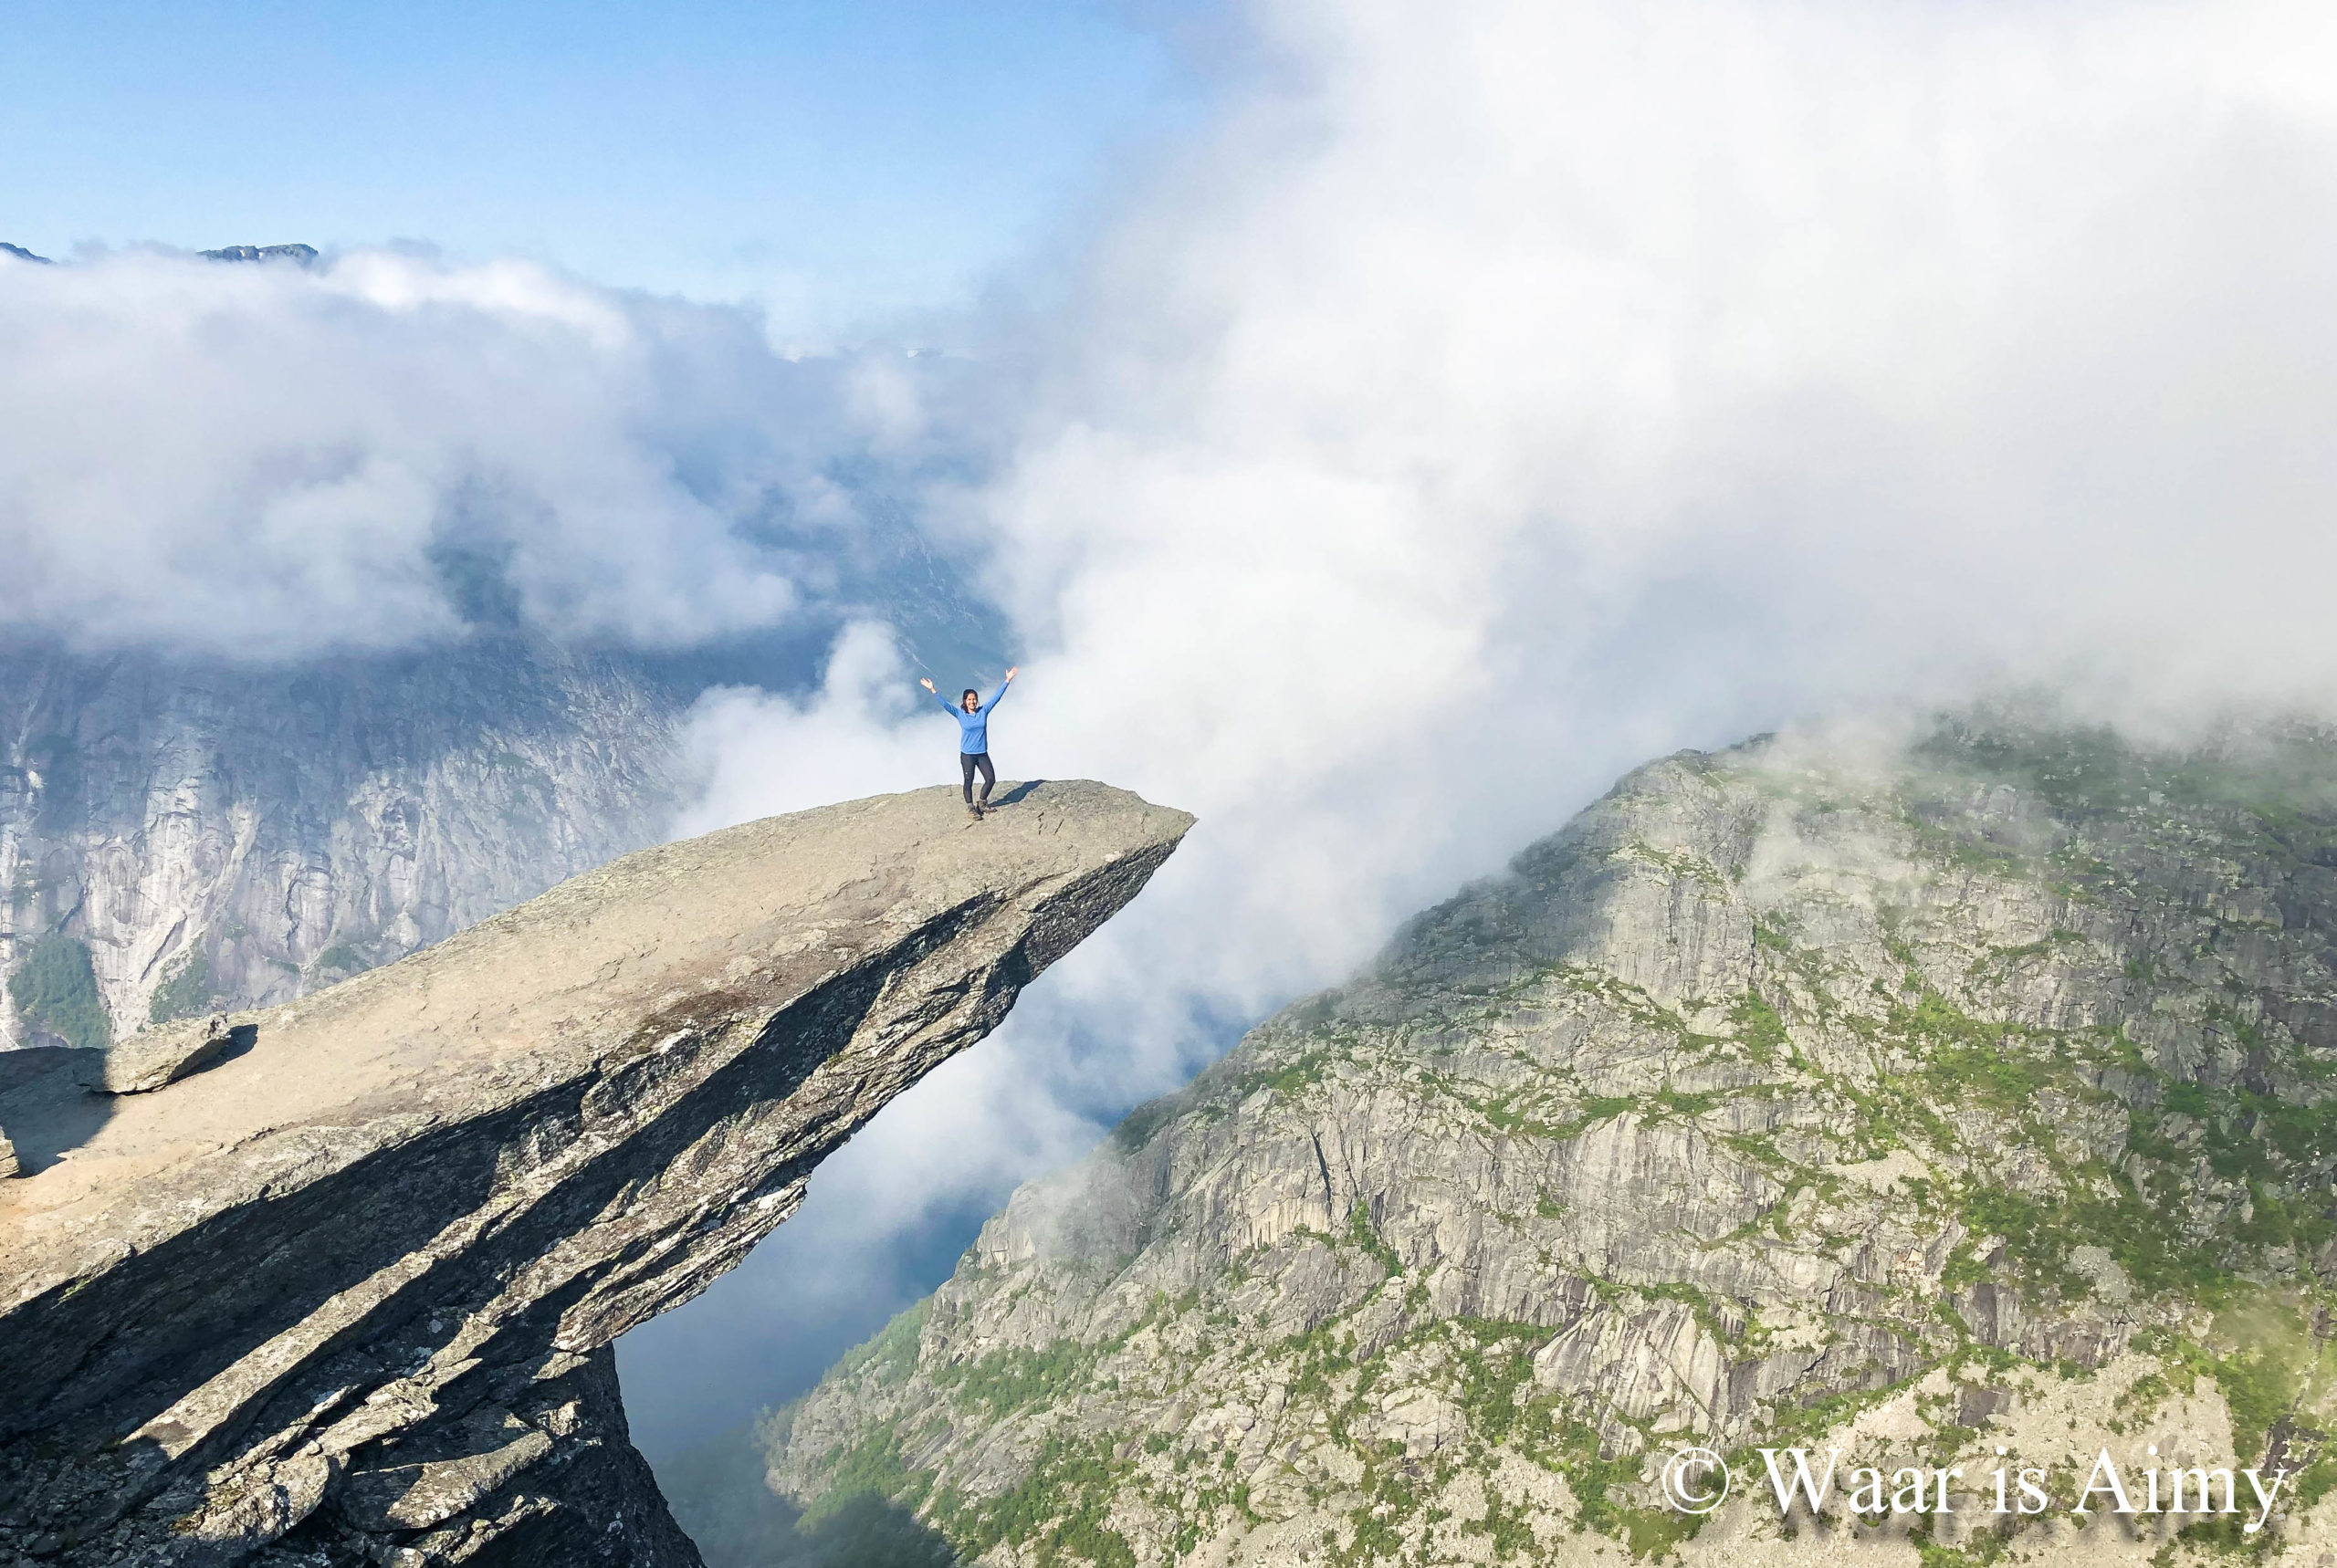 Trolltunga - Waar is Aimy